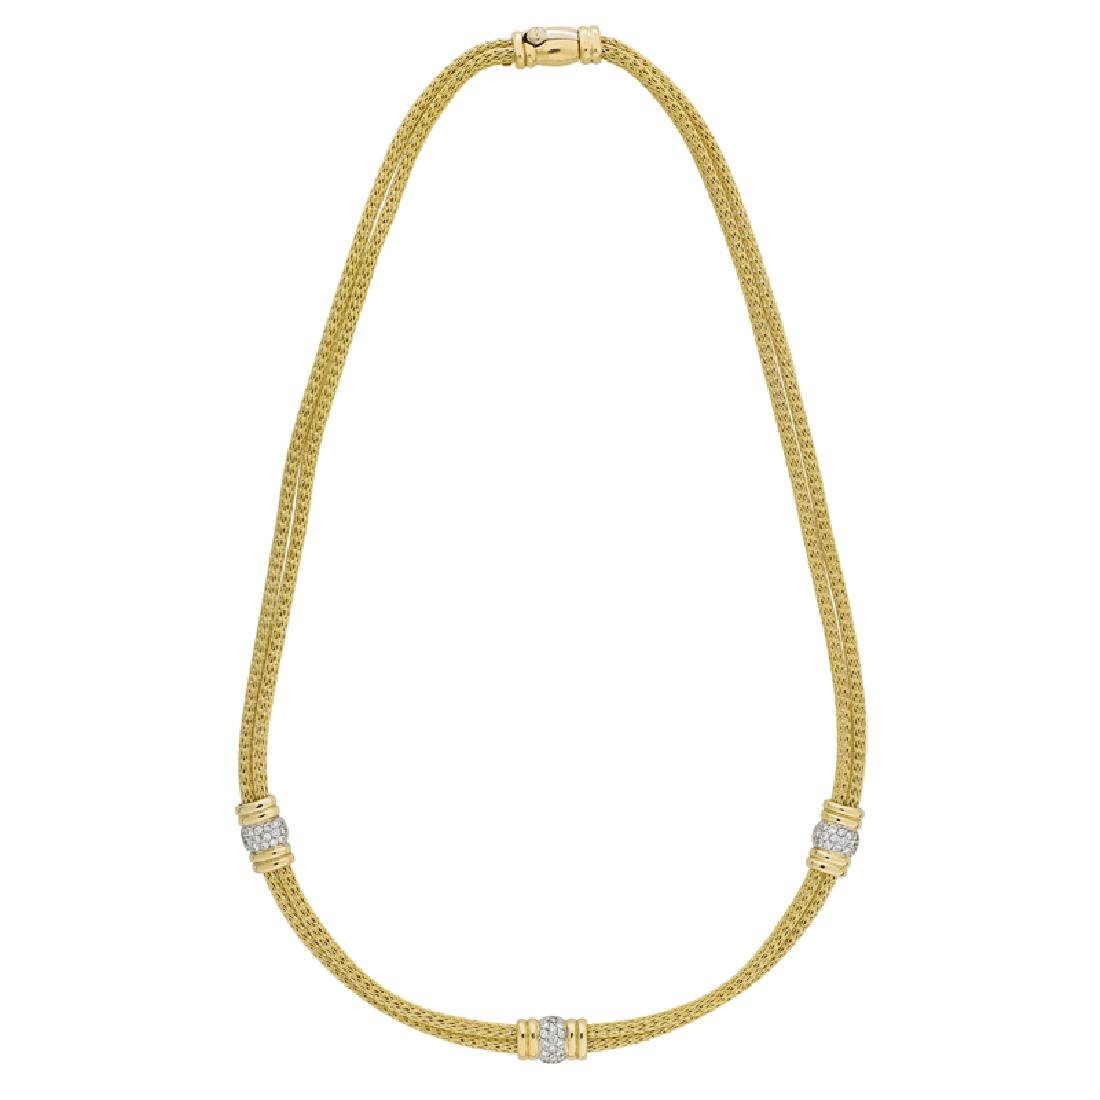 DIAMOND & YELLOW GOLD NECKLACE